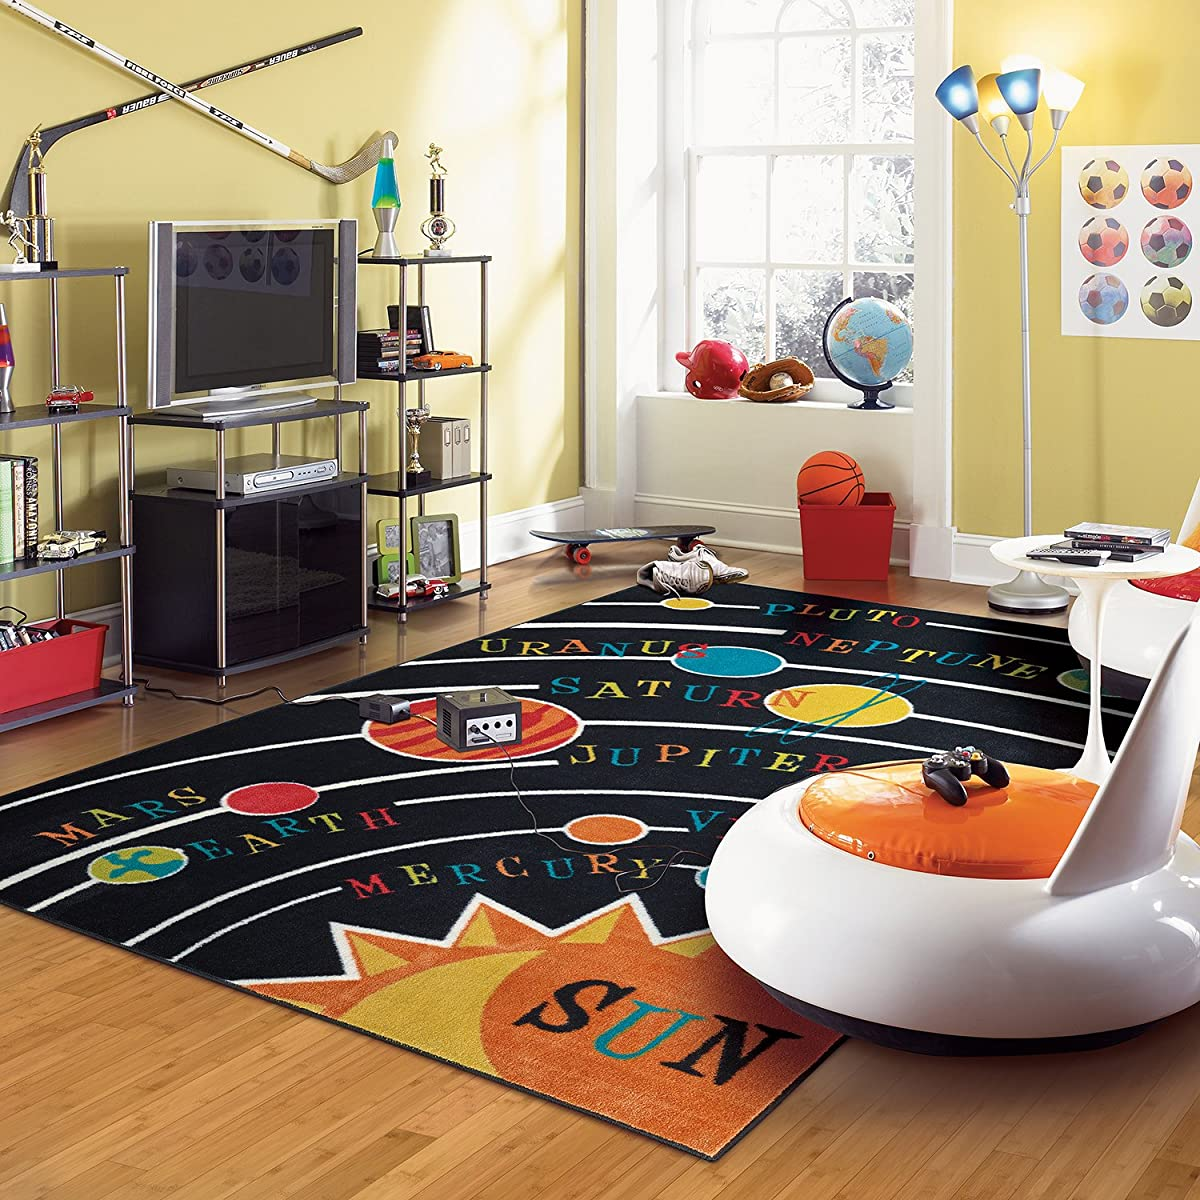 Mohawk Home Aurora Planets Solar System Colorful Printed Kids Area Rug, 5x8, Black